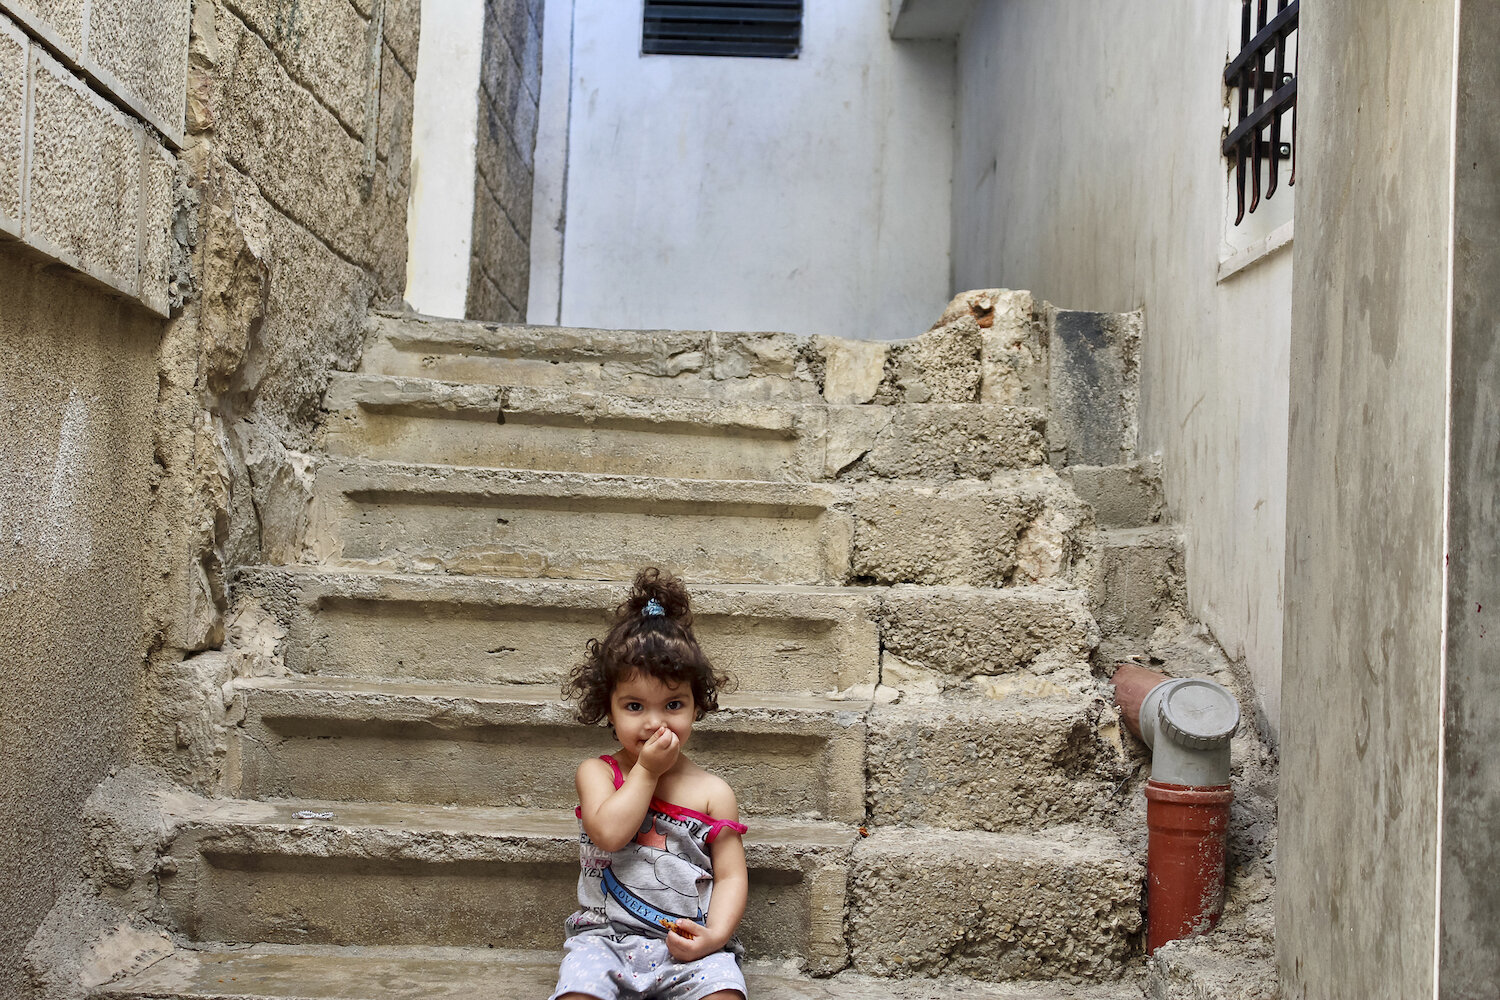 saskia-keeley-photography-humanitarian-photojournalism-documentarian-israel-and-palestine-peace-beyond-sides-towards-reconciliation-roots-non-violence-workshops-10.jpg